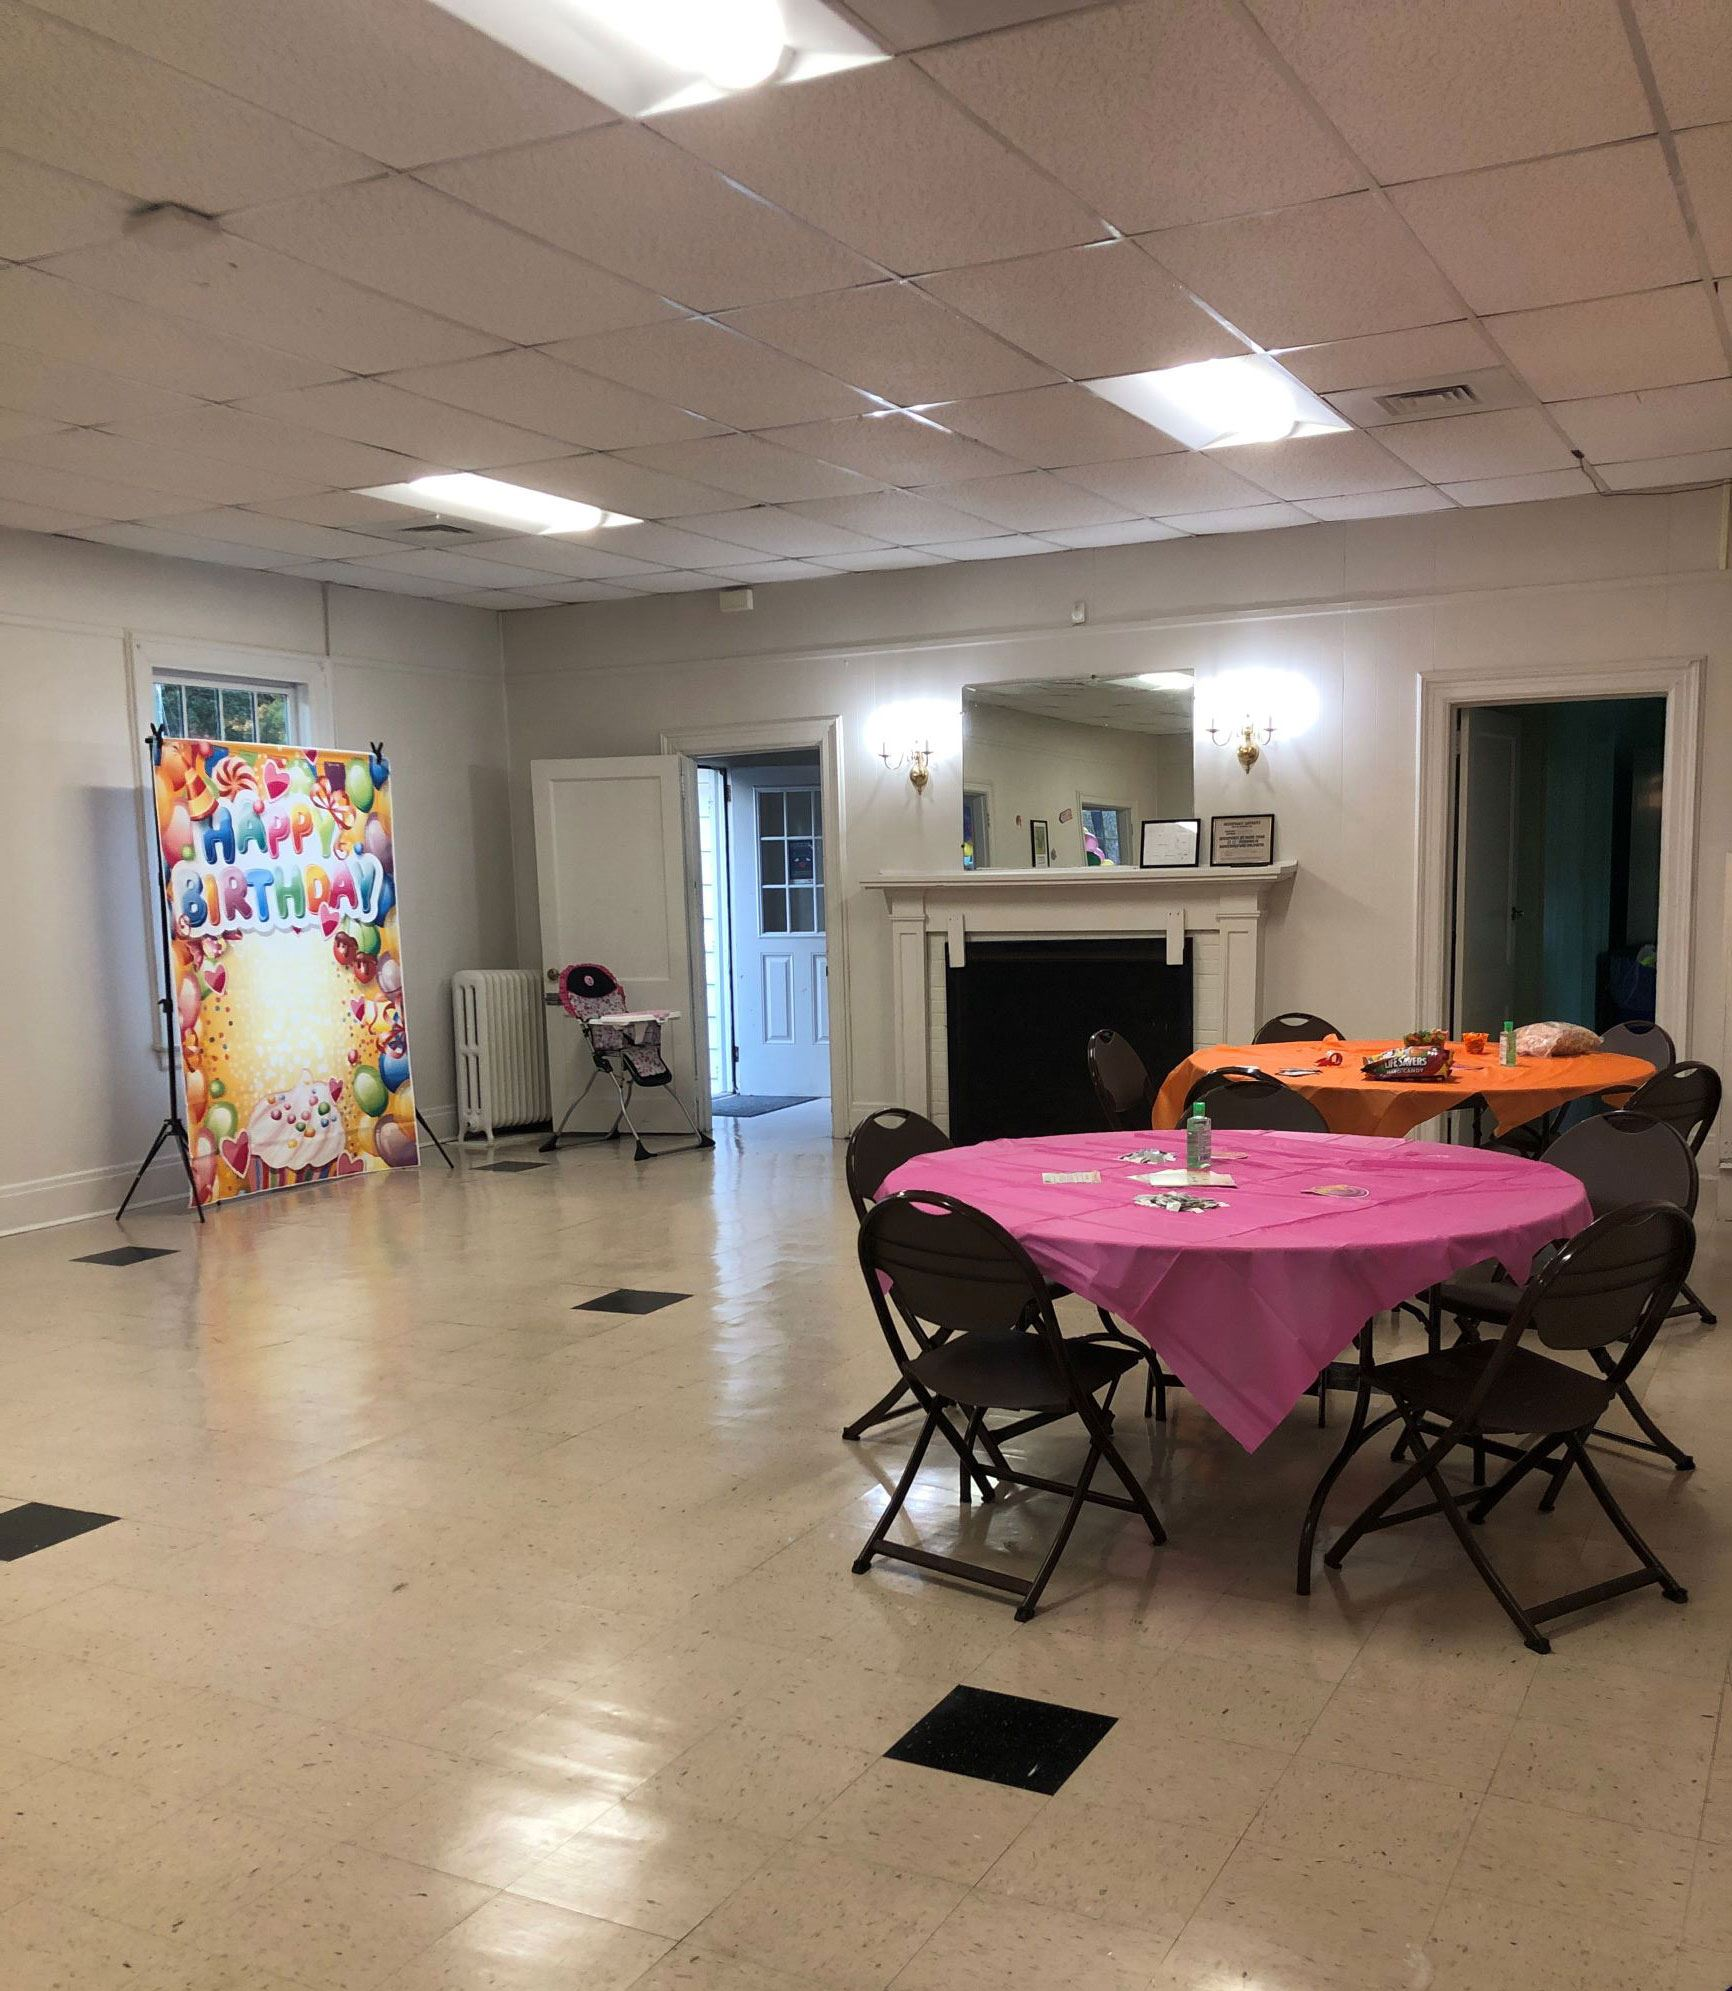 Forest Hills Neighborhood Clubhouse Large Meeting Room Decorated for a Birthday Party